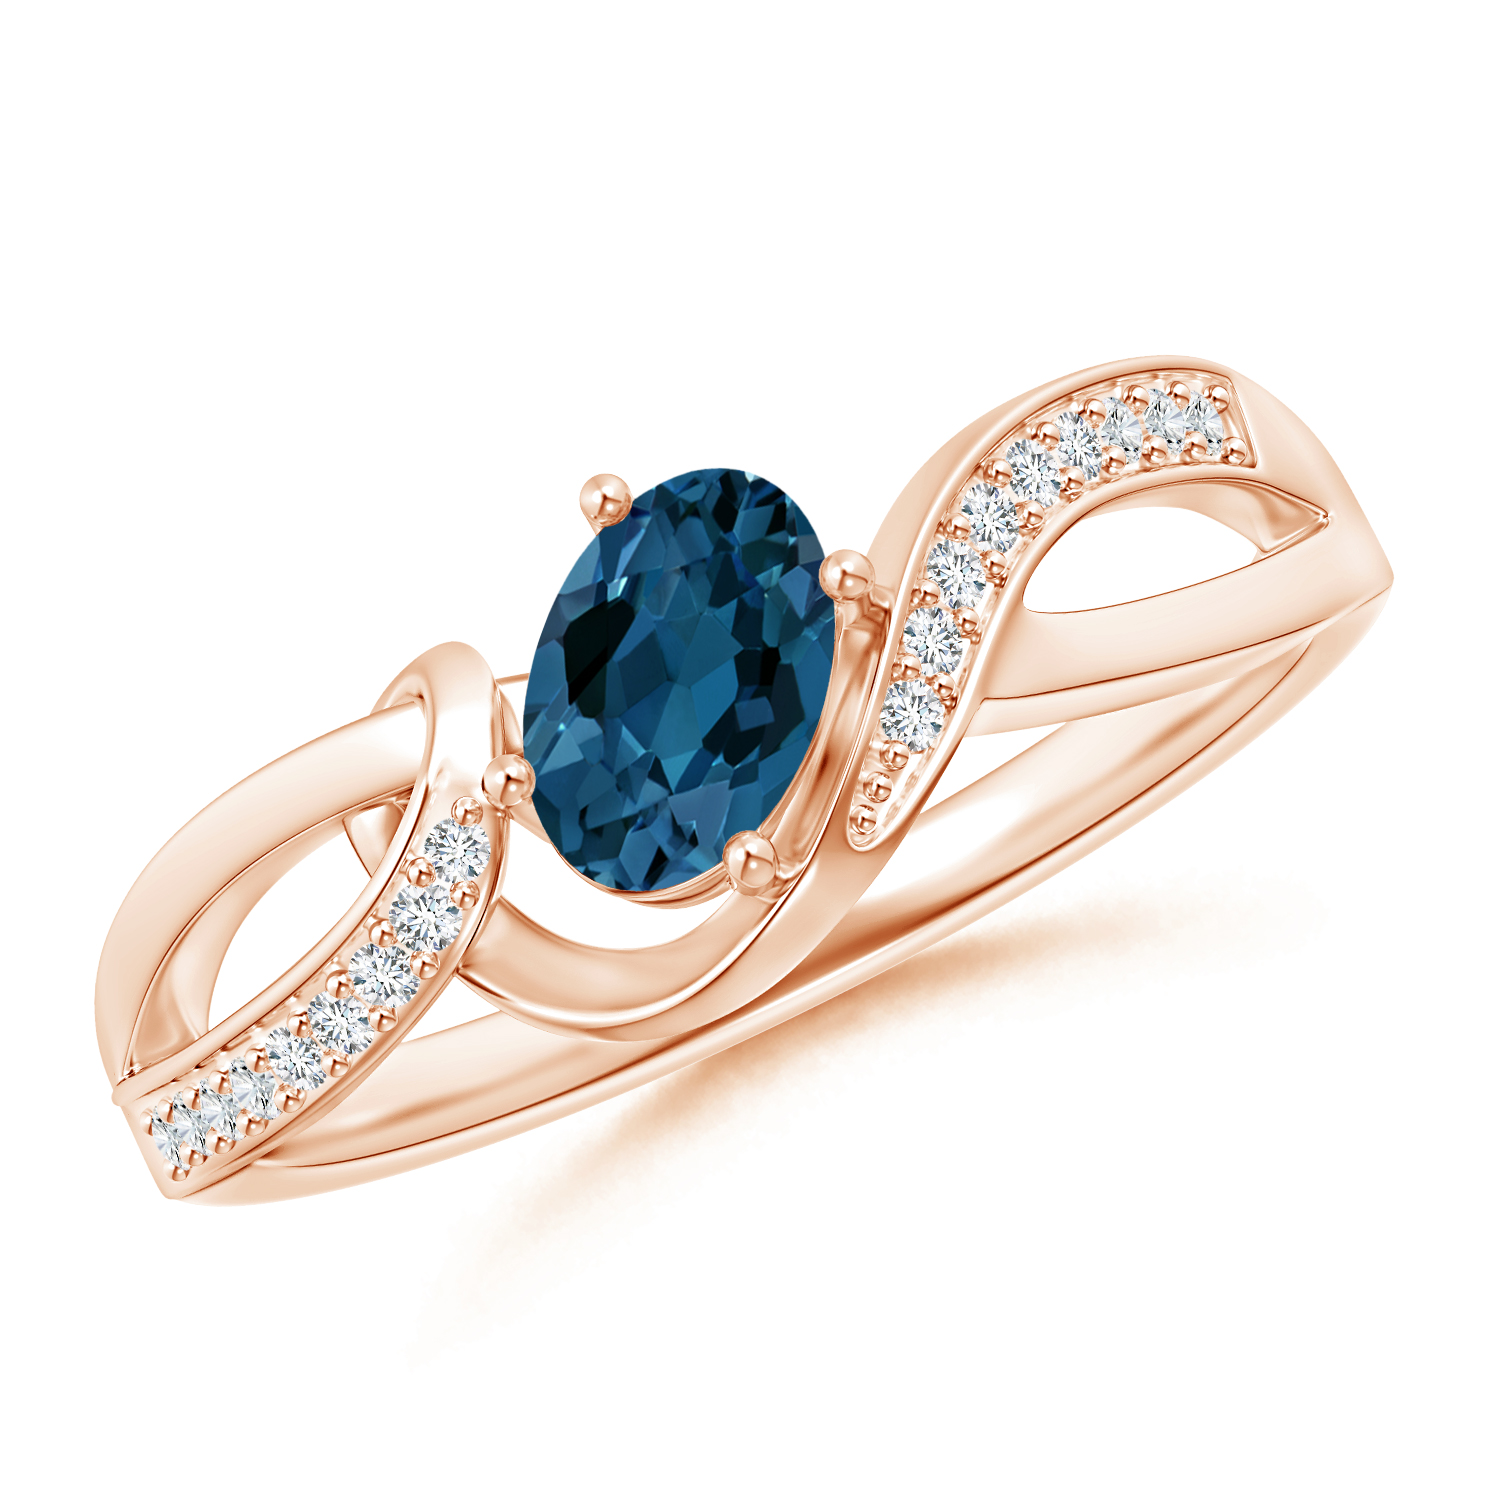 Oval London Blue Topaz Twisted Ribbon Ring with Diamonds - Angara.com